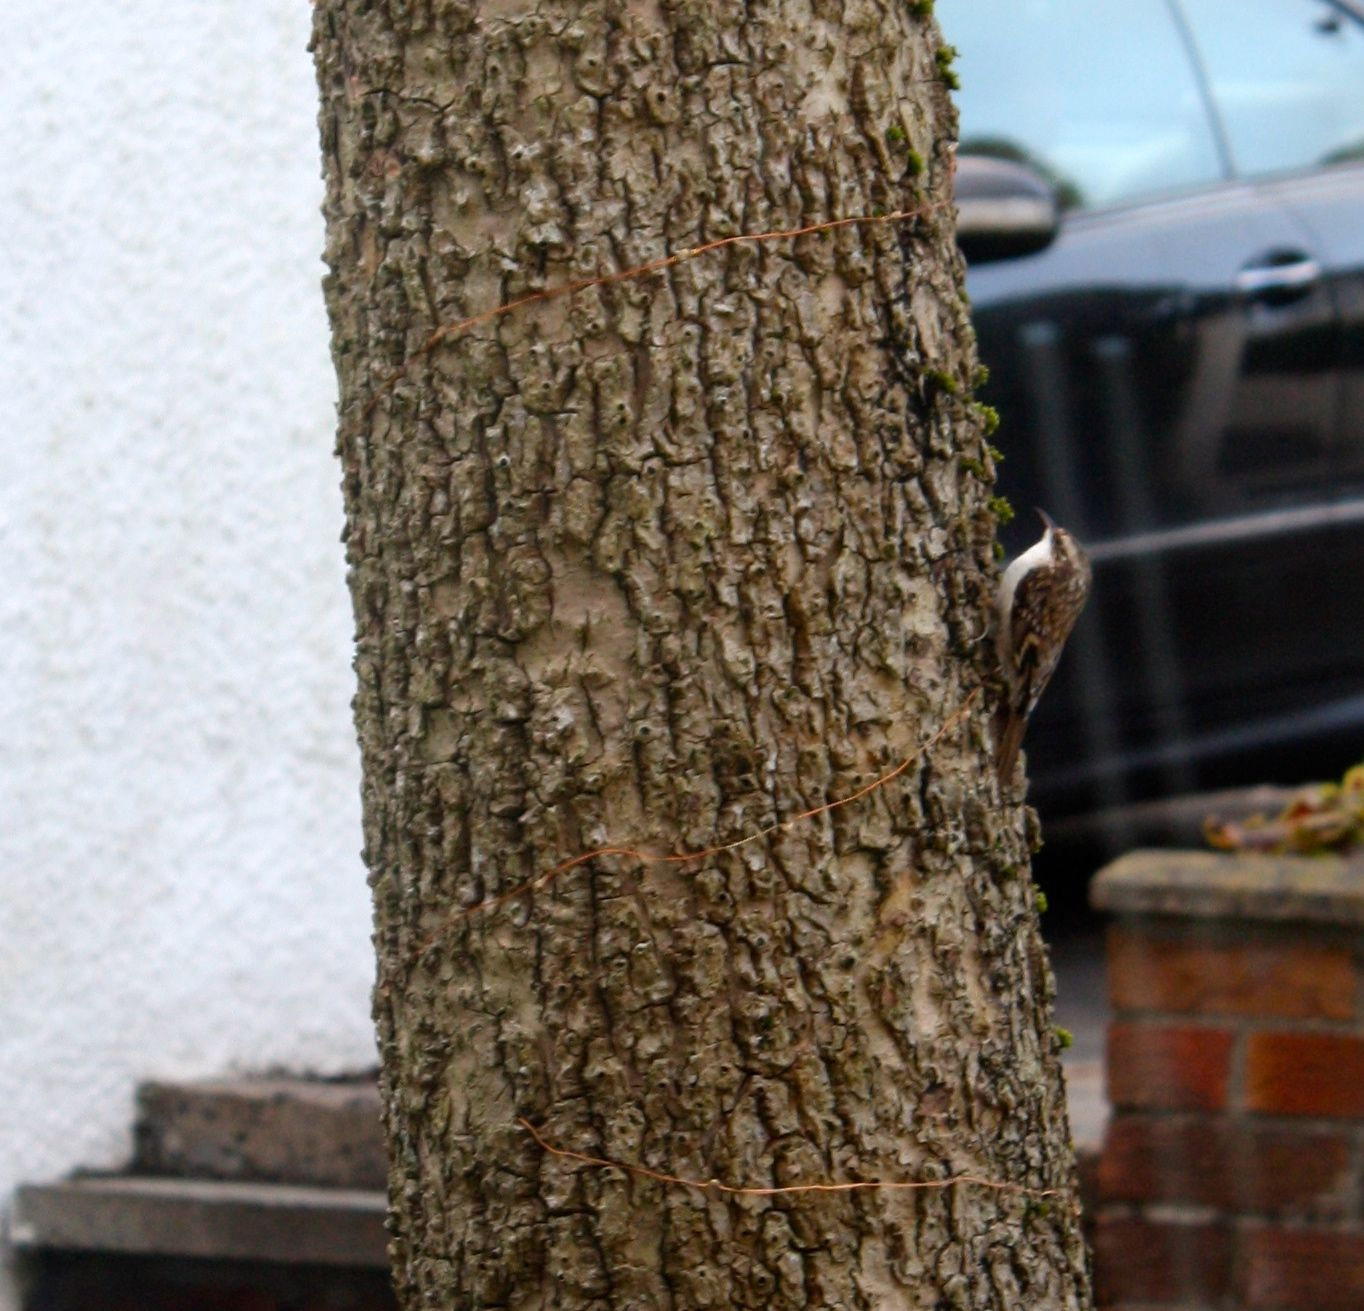 SNAPPED: The treecreeper makes its way up Dúlra's palm tree trunk outside his window